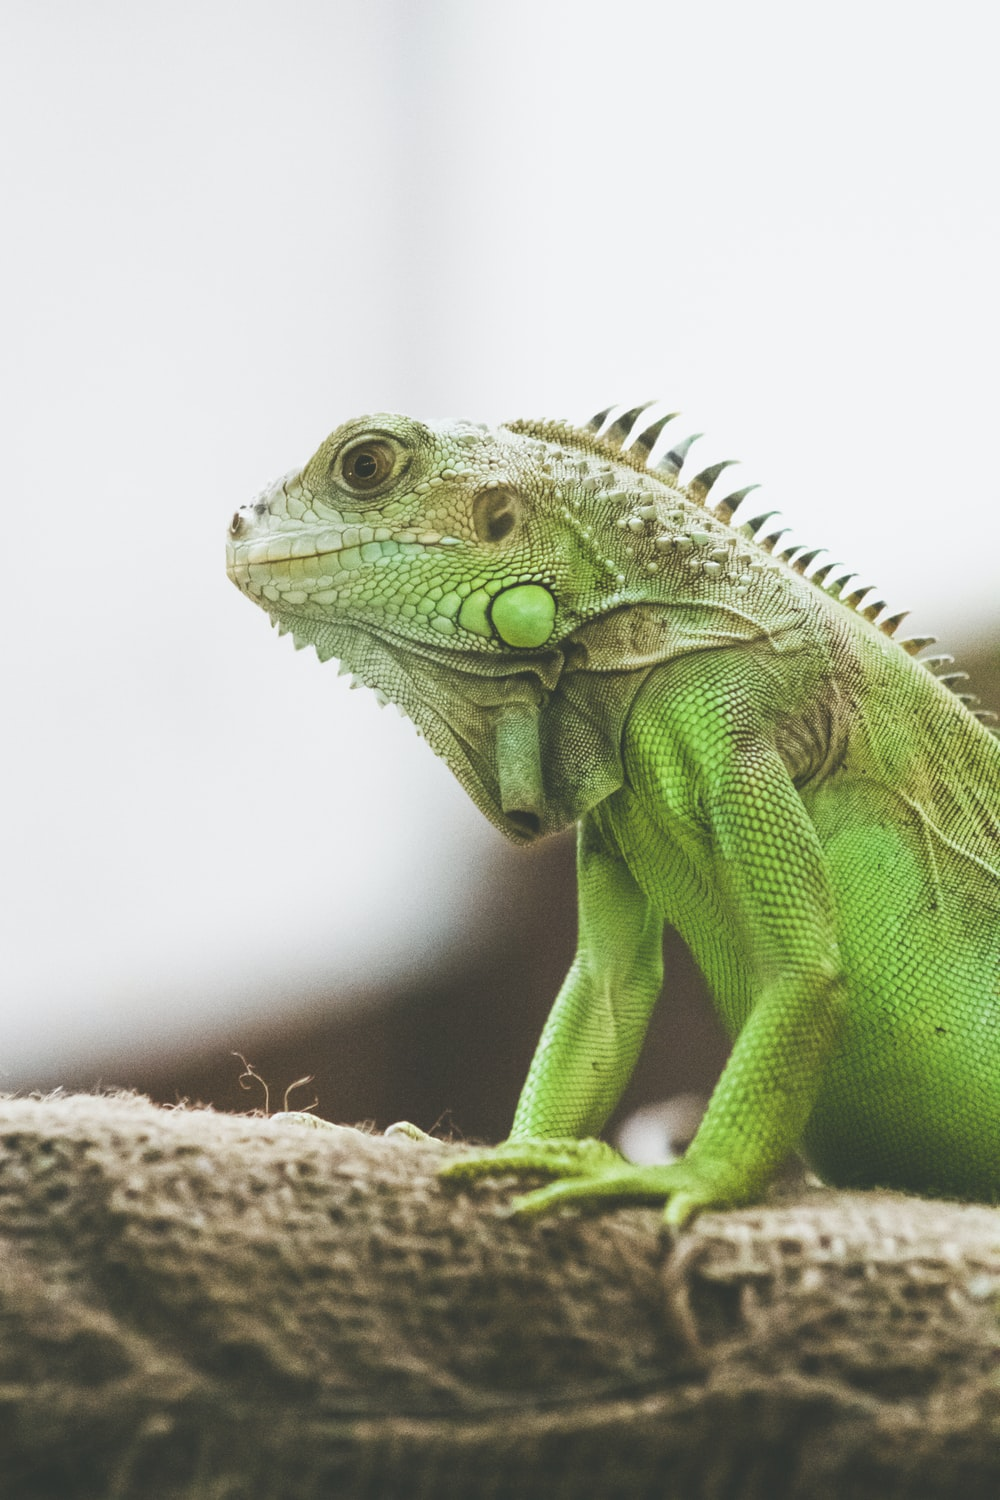 green and brown iguana on brown wooden surface